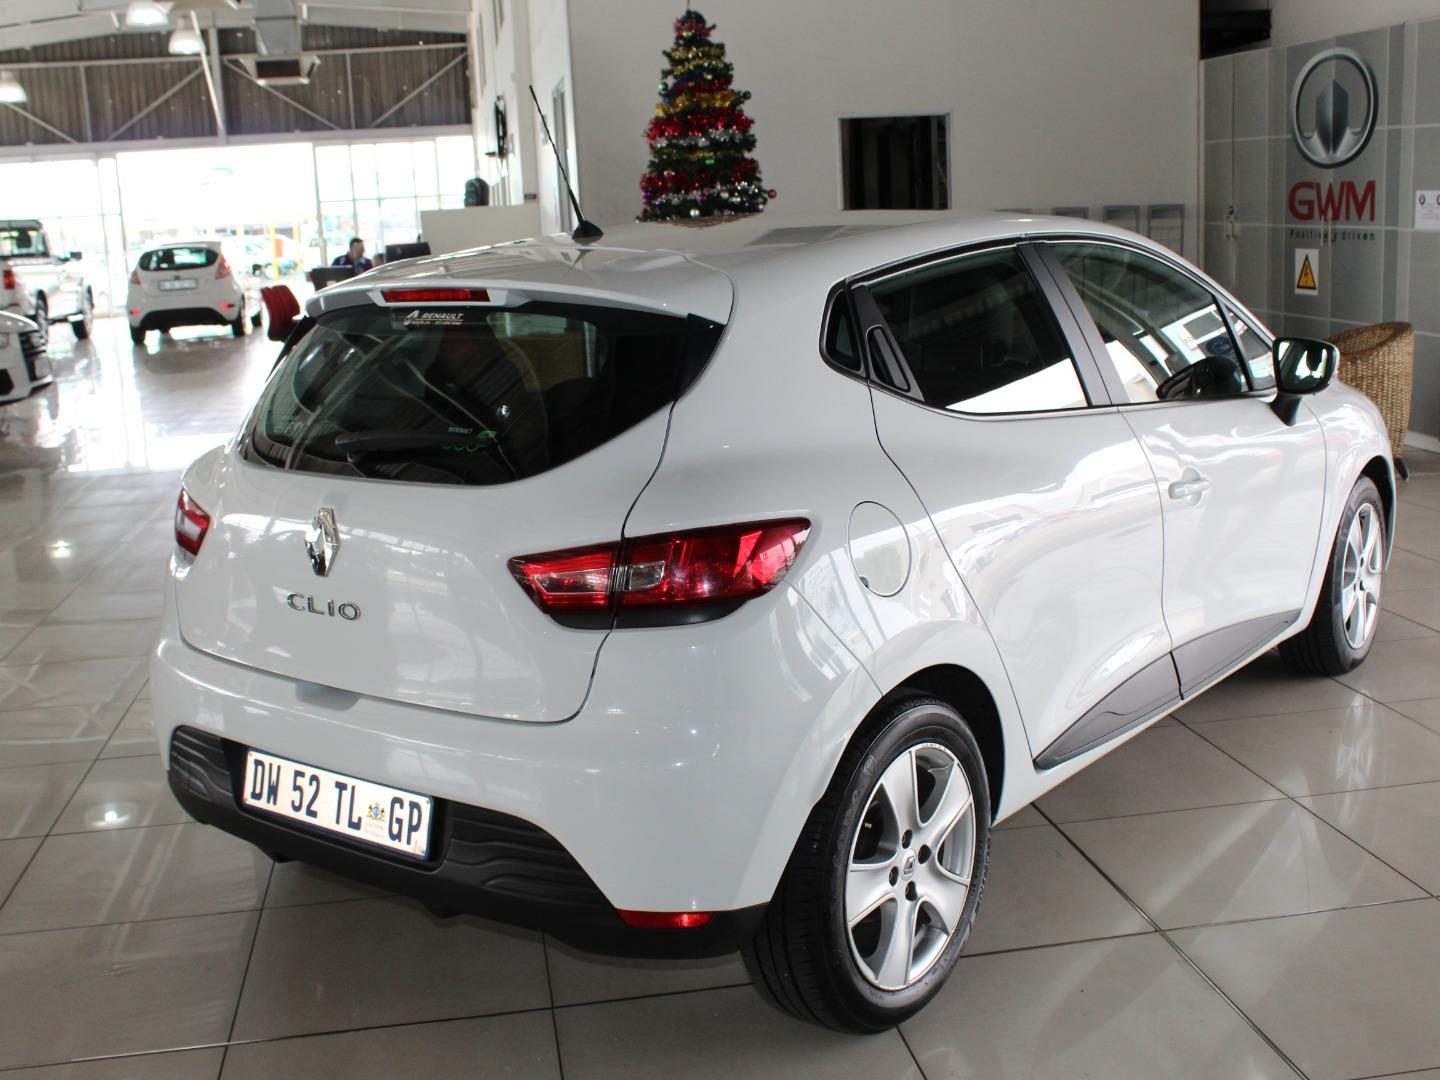 2015 Renault Clio 66kW Turbo Expression- Picture 2